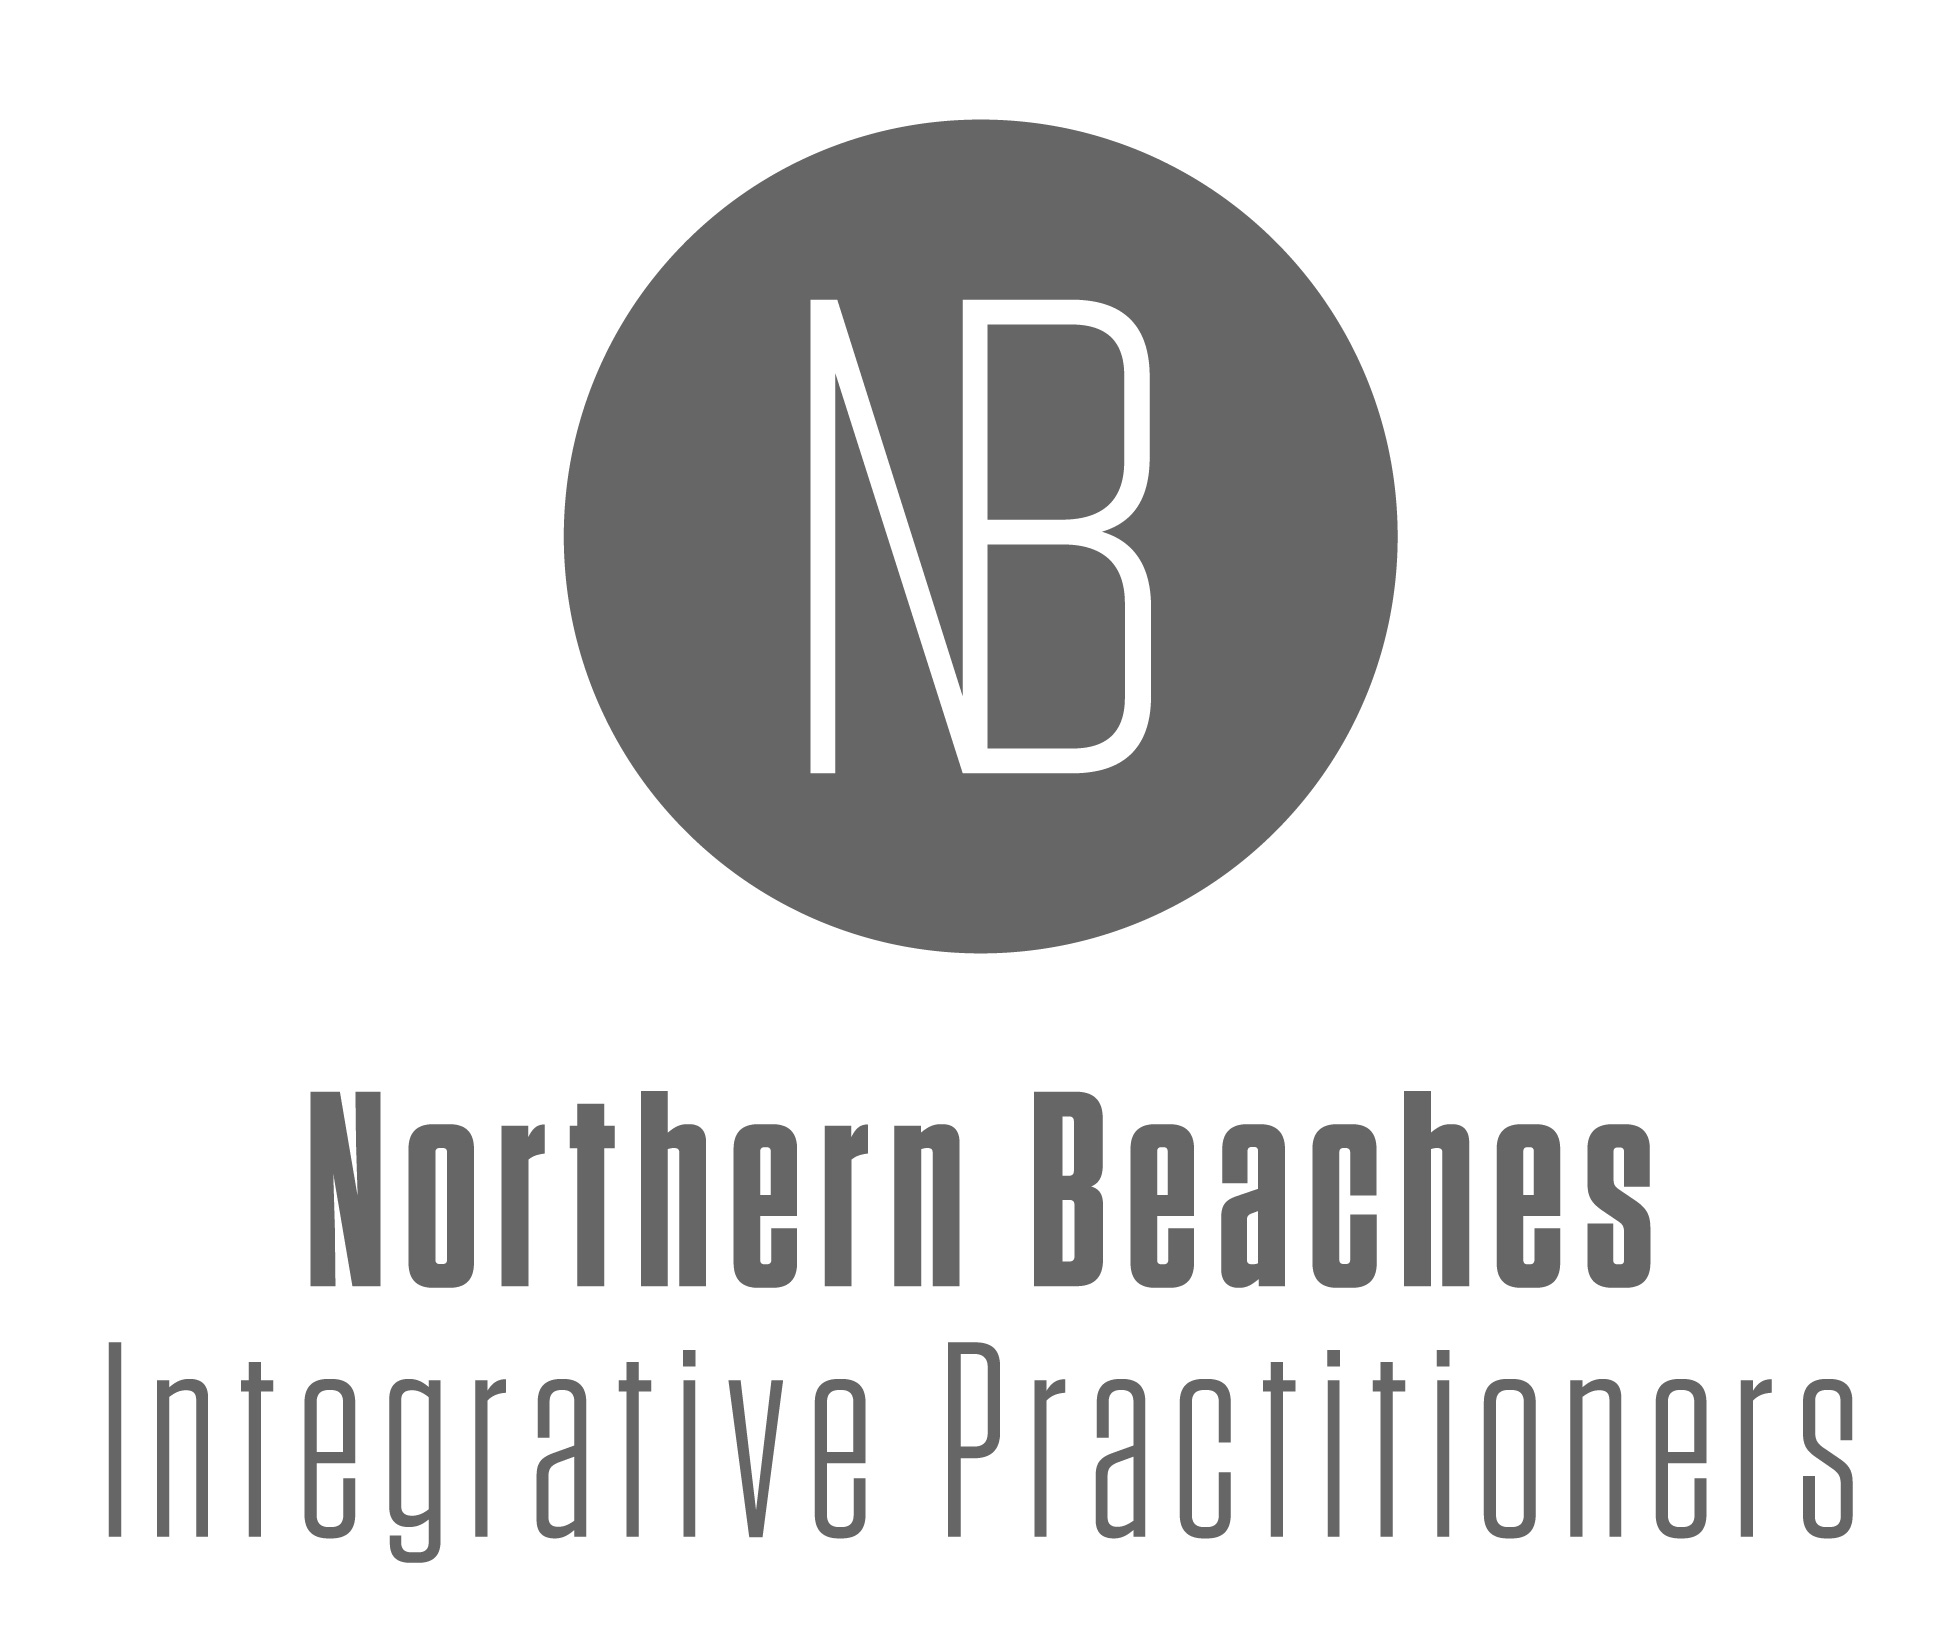 Northern Beaches Integrative Practitioners